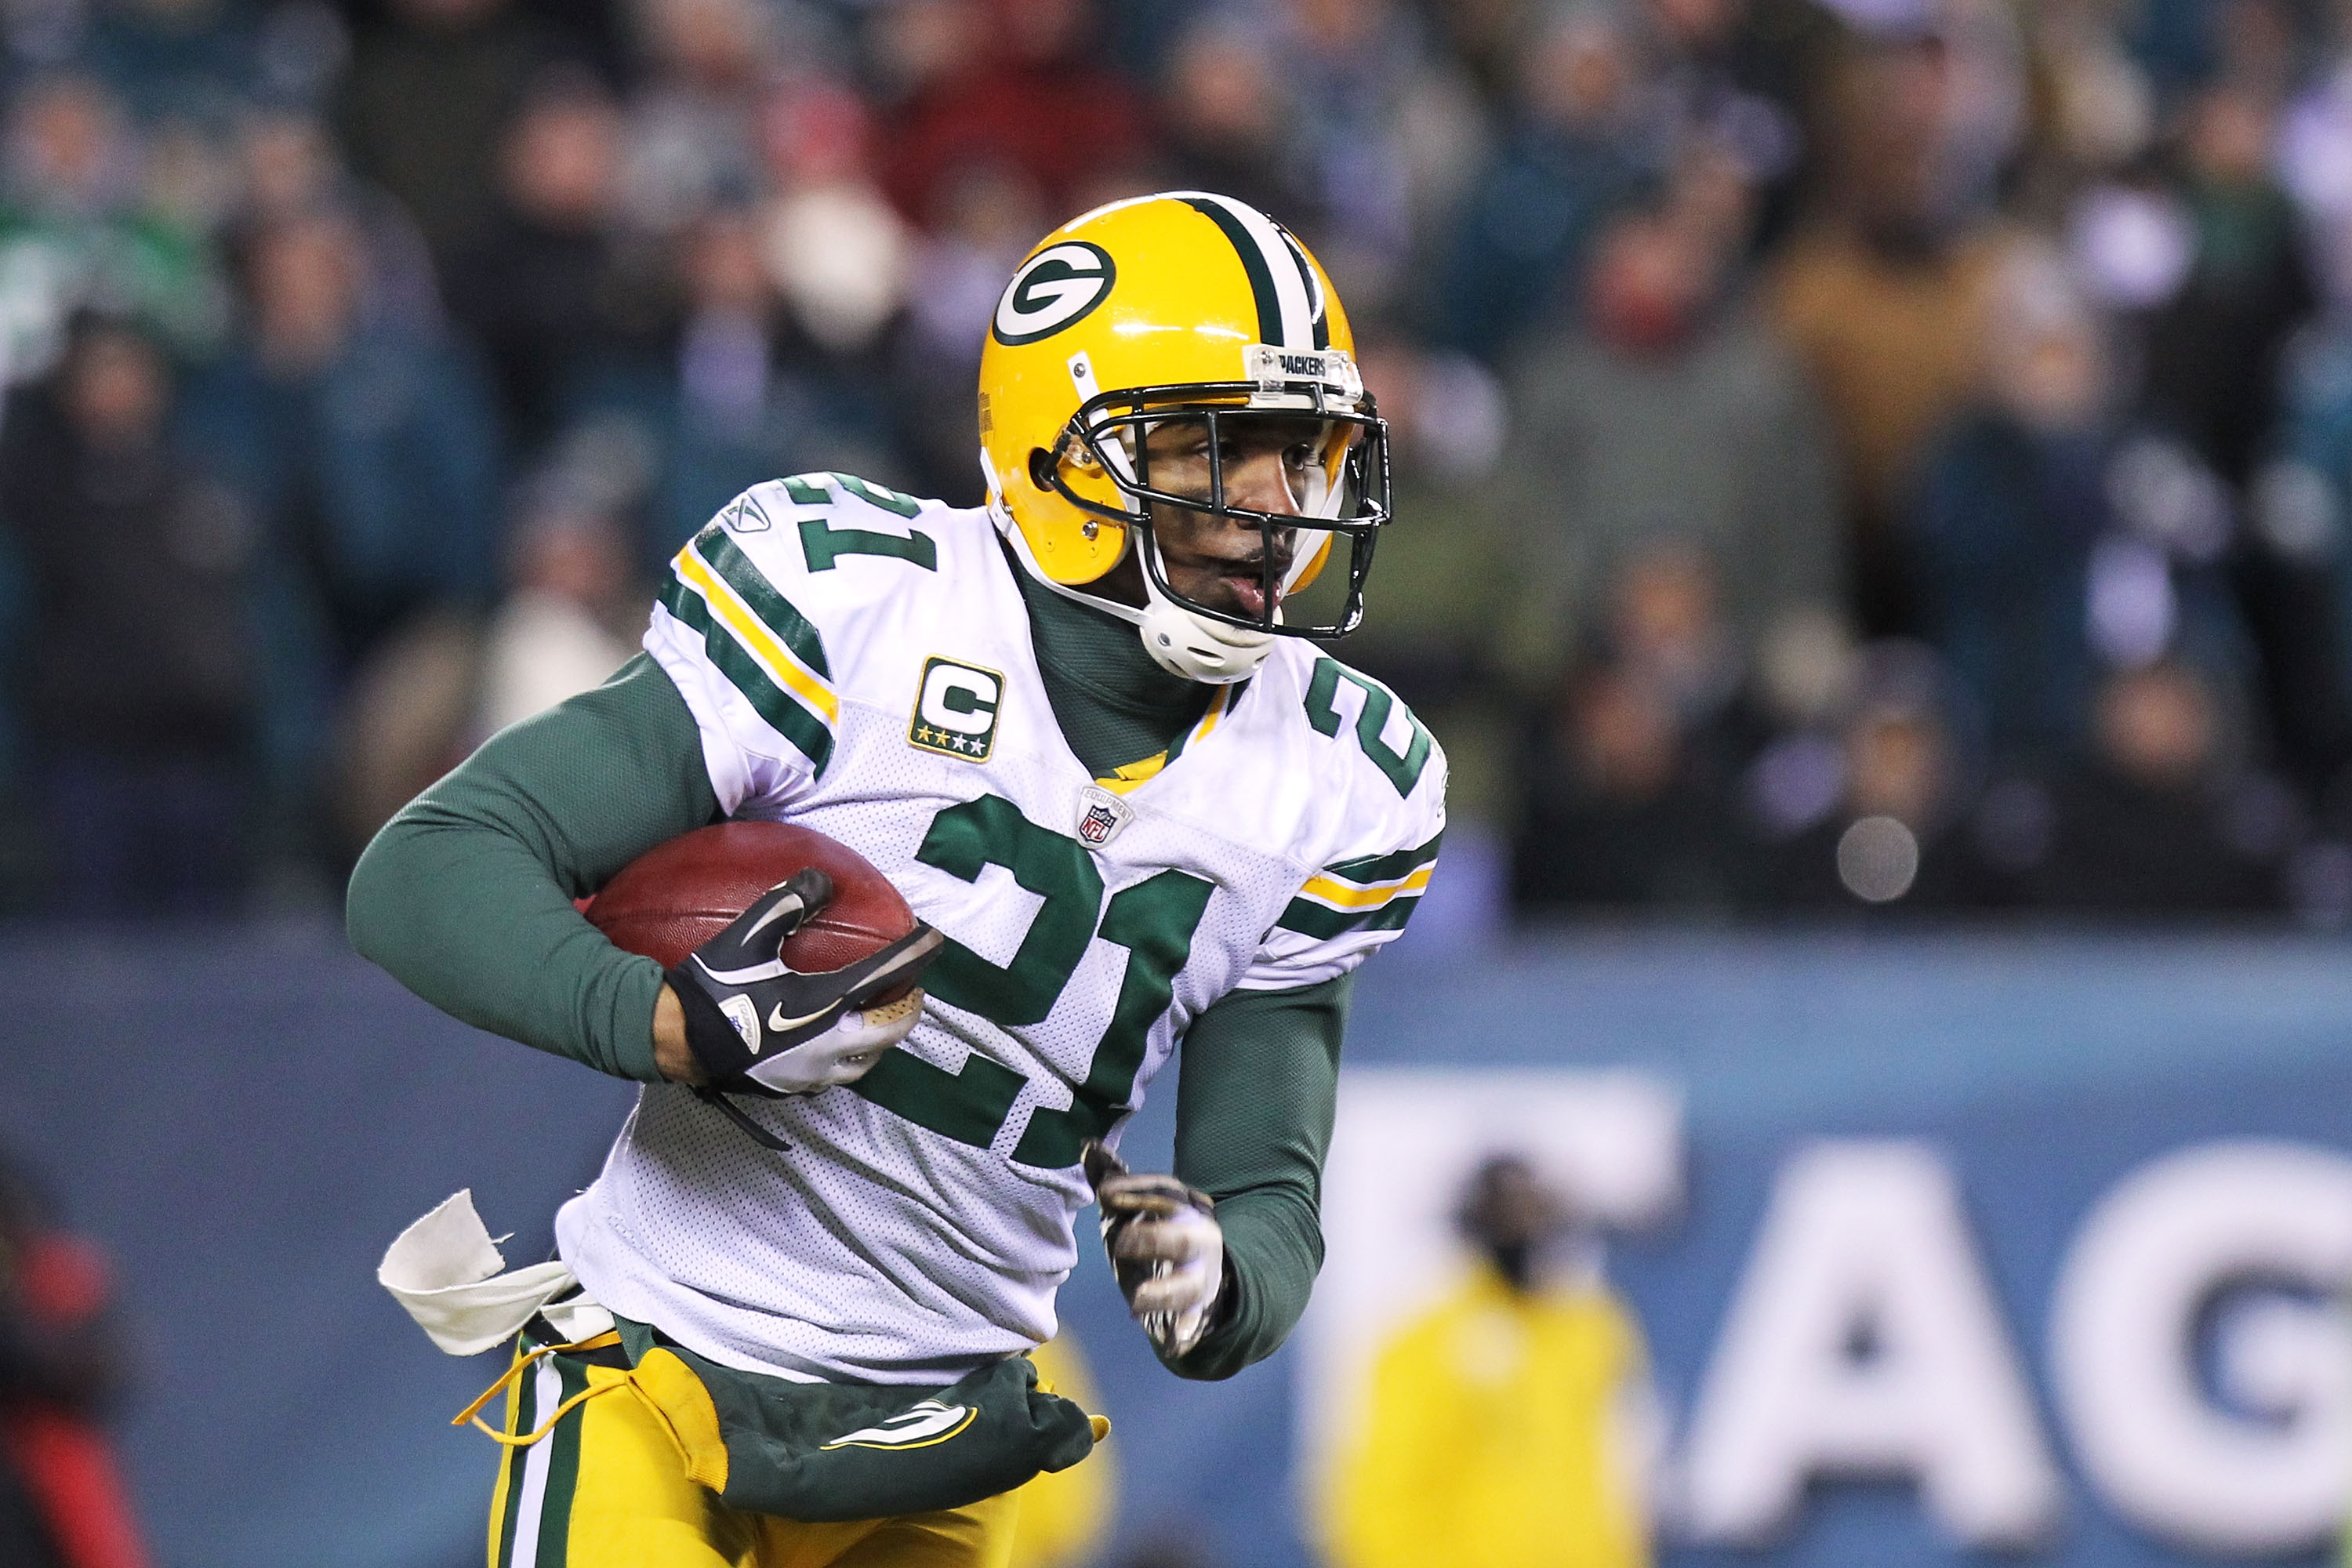 PHILADELPHIA, PA - JANUARY 09:  Charles Woodson #21 of the Green Bay Packers runs down field against the Philadelphia Eagles during the 2011 NFC wild card playoff game at Lincoln Financial Field on January 9, 2011 in Philadelphia, Pennsylvania.  (Photo by